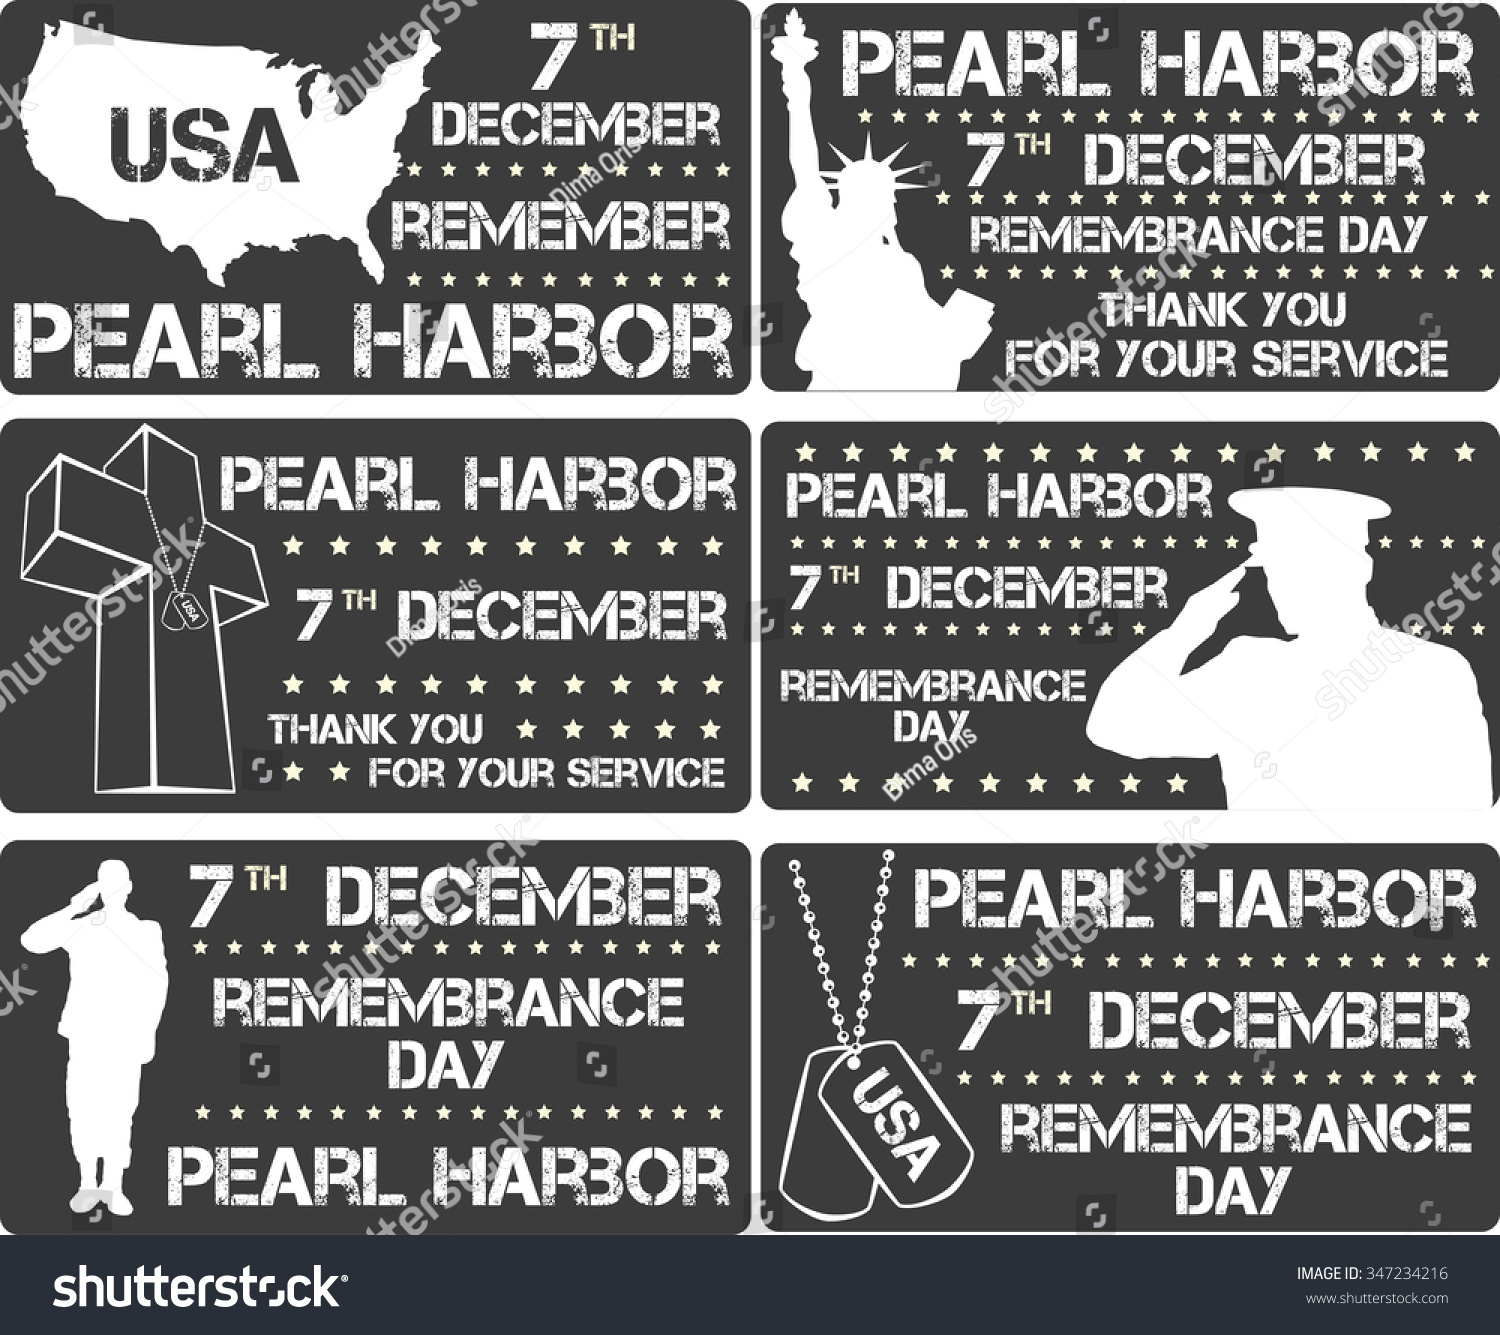 Pearl Harbor Remembrance Day Vector Illustration Stock